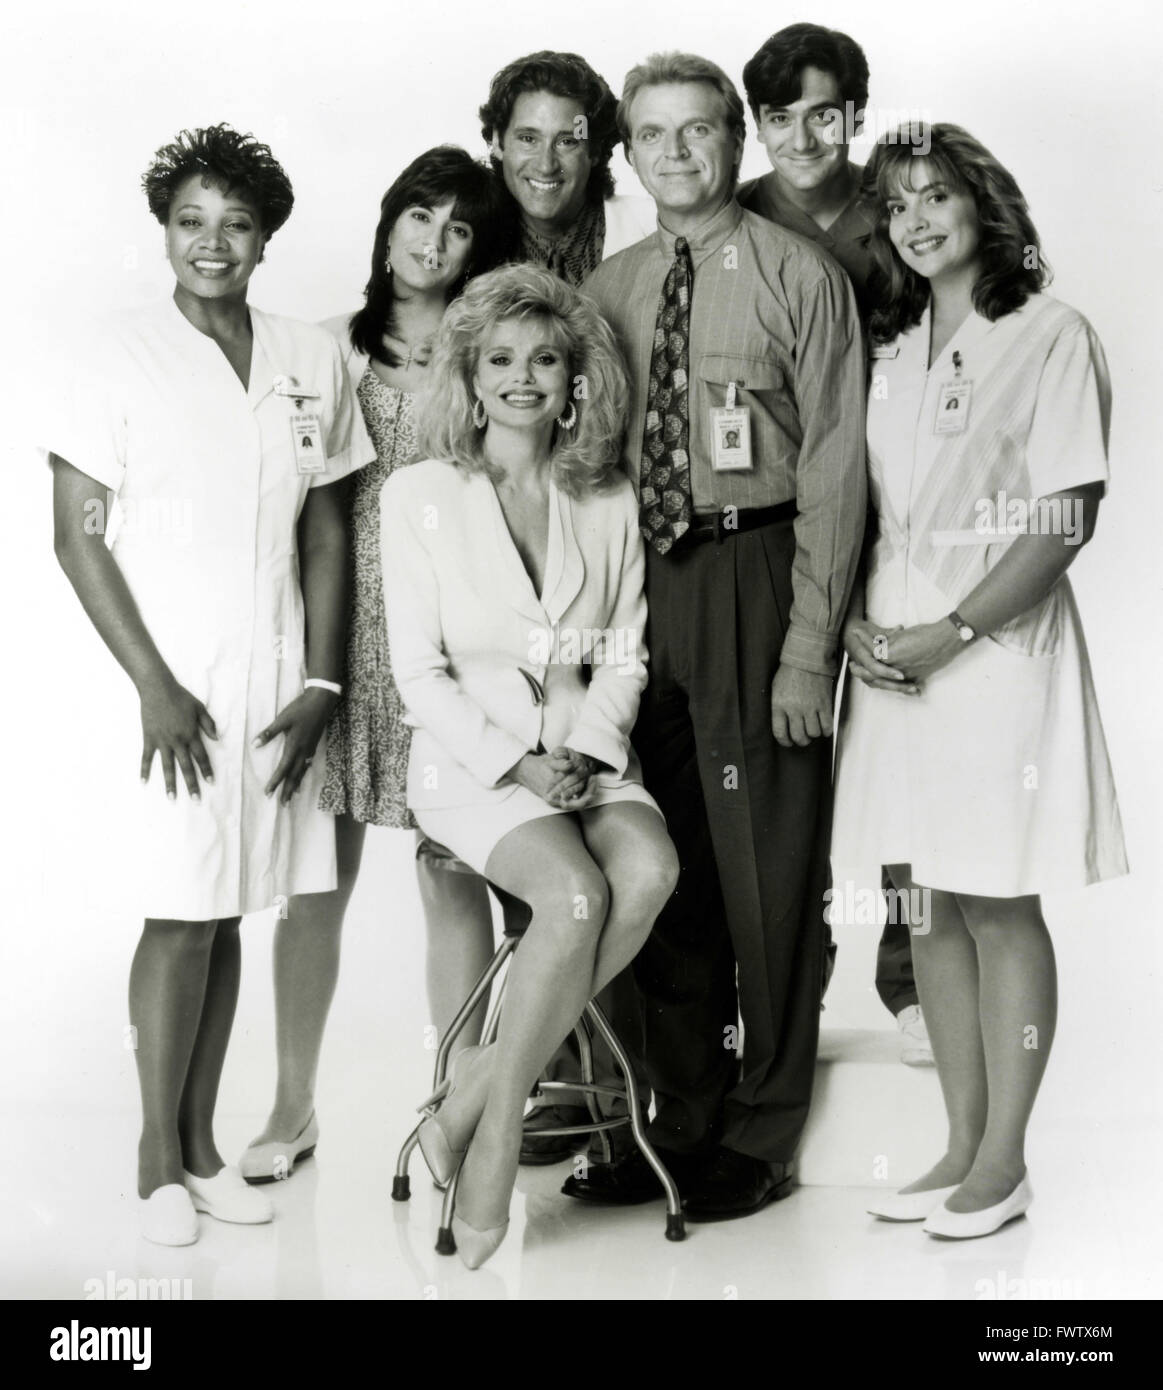 The cast of the TV series Nurses, USA 1993 - Stock Image